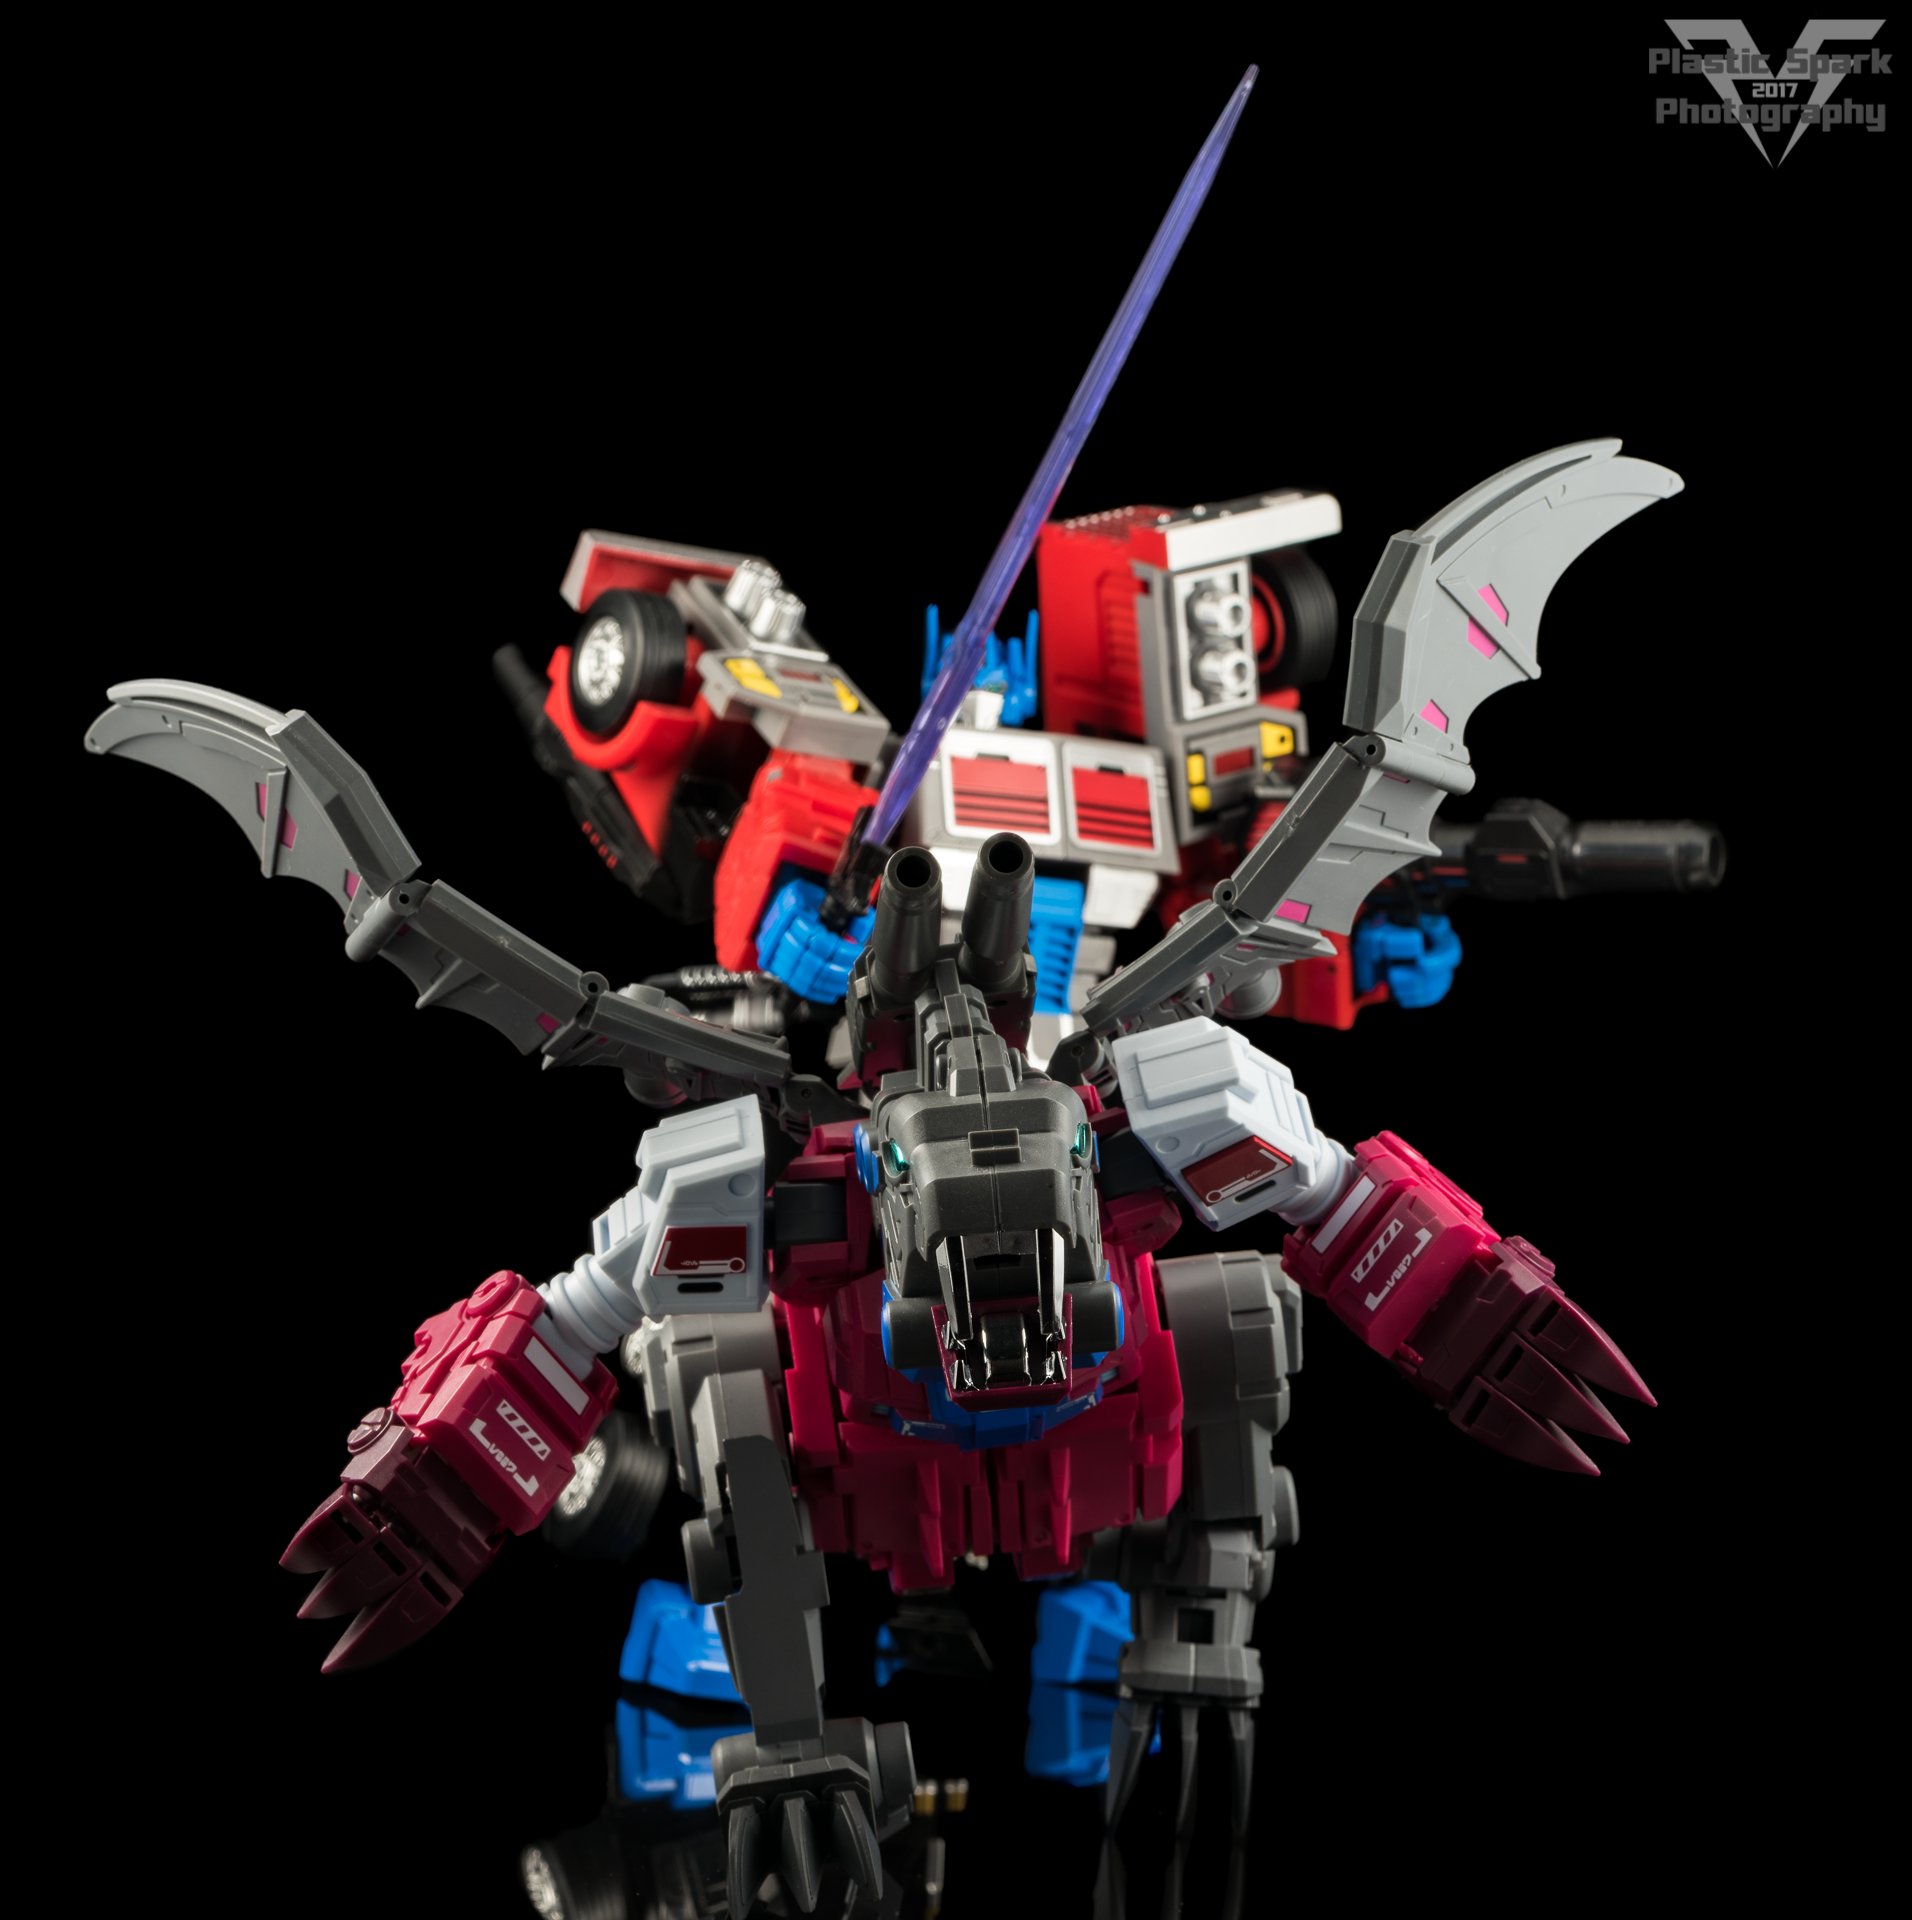 Fans-Hobby-MB-05-Flypro-(4-of-42).png